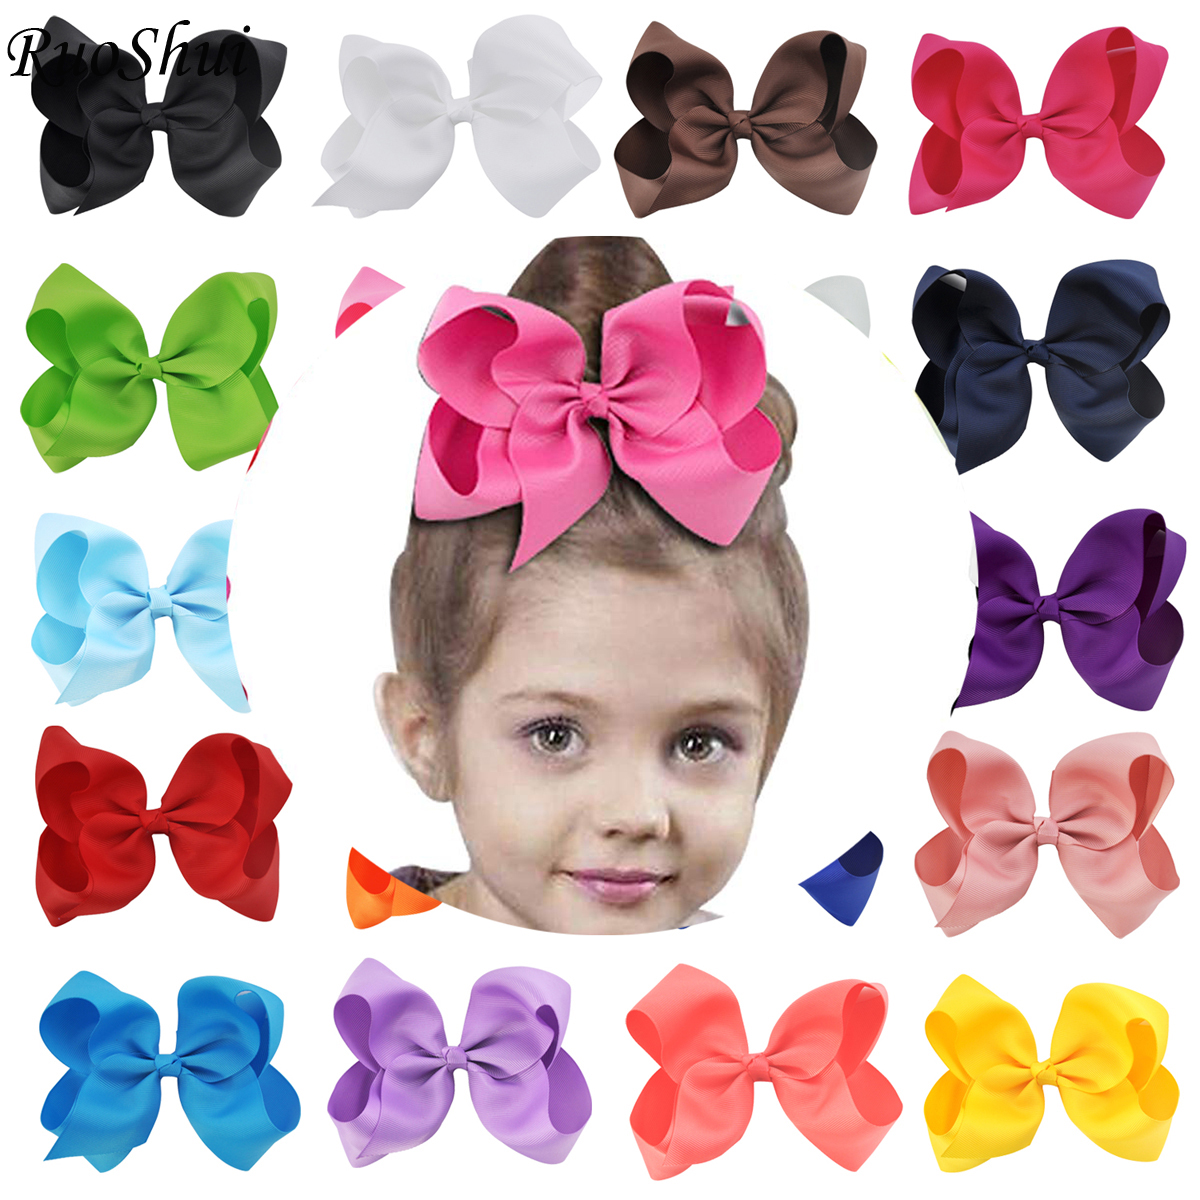 Hair Accessories Honest Red Childrens Hair Clips Kids Bows Girls' Accessories